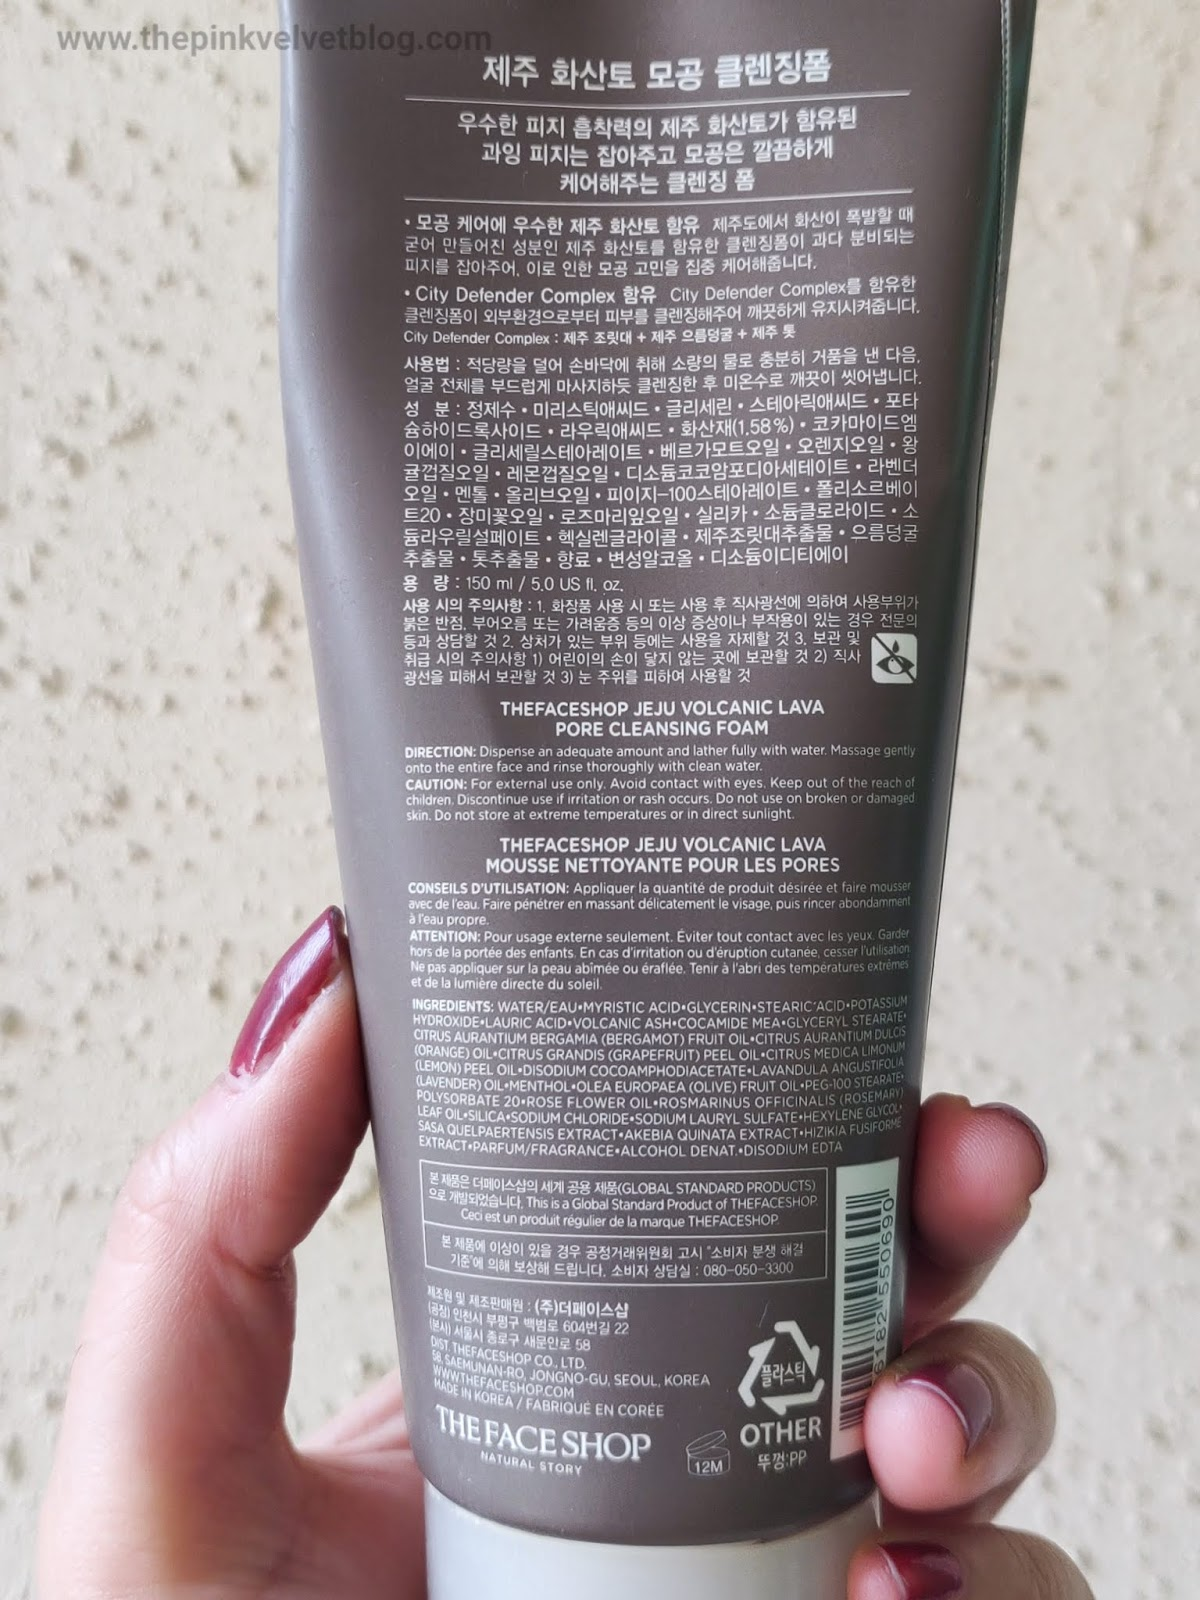 The Face Shop Jeju Volcanic Lava Pore Cleansing Foam - Review